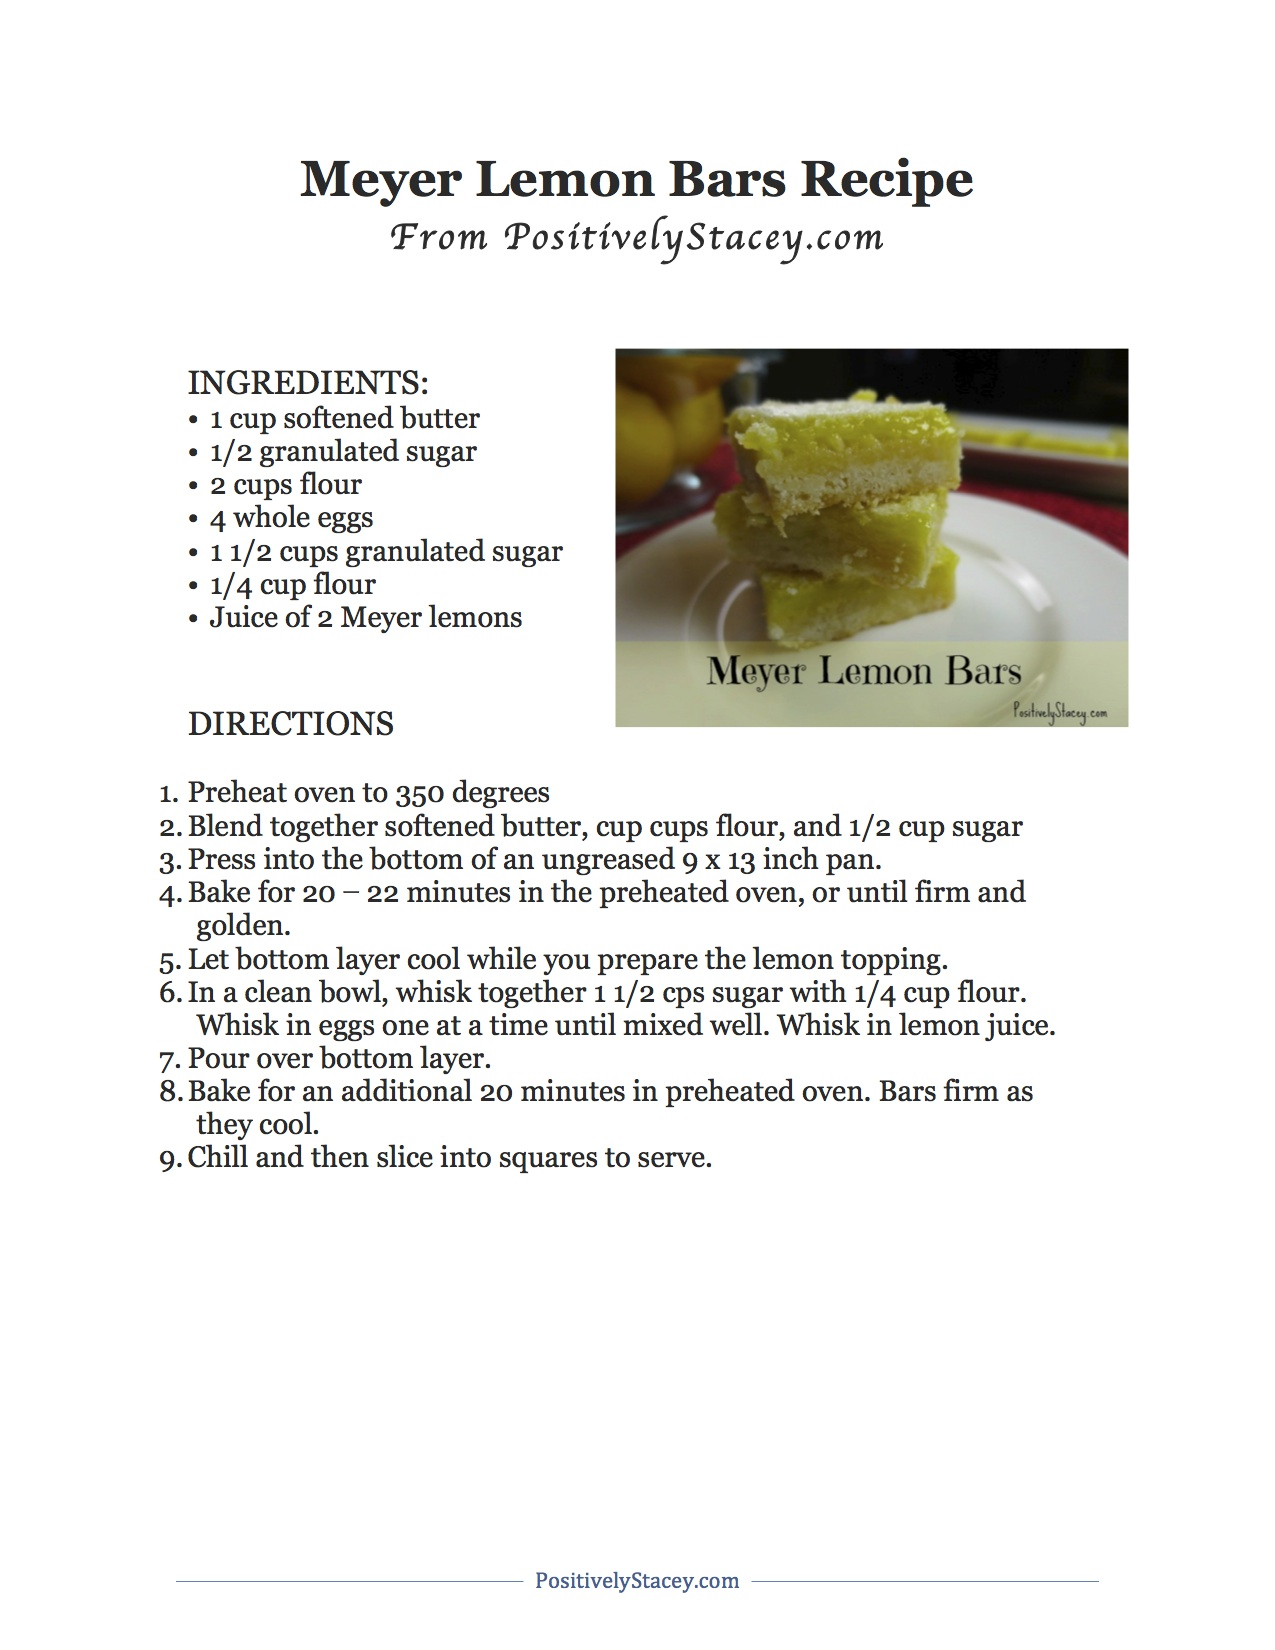 Meyer Lemon Bars Recipe